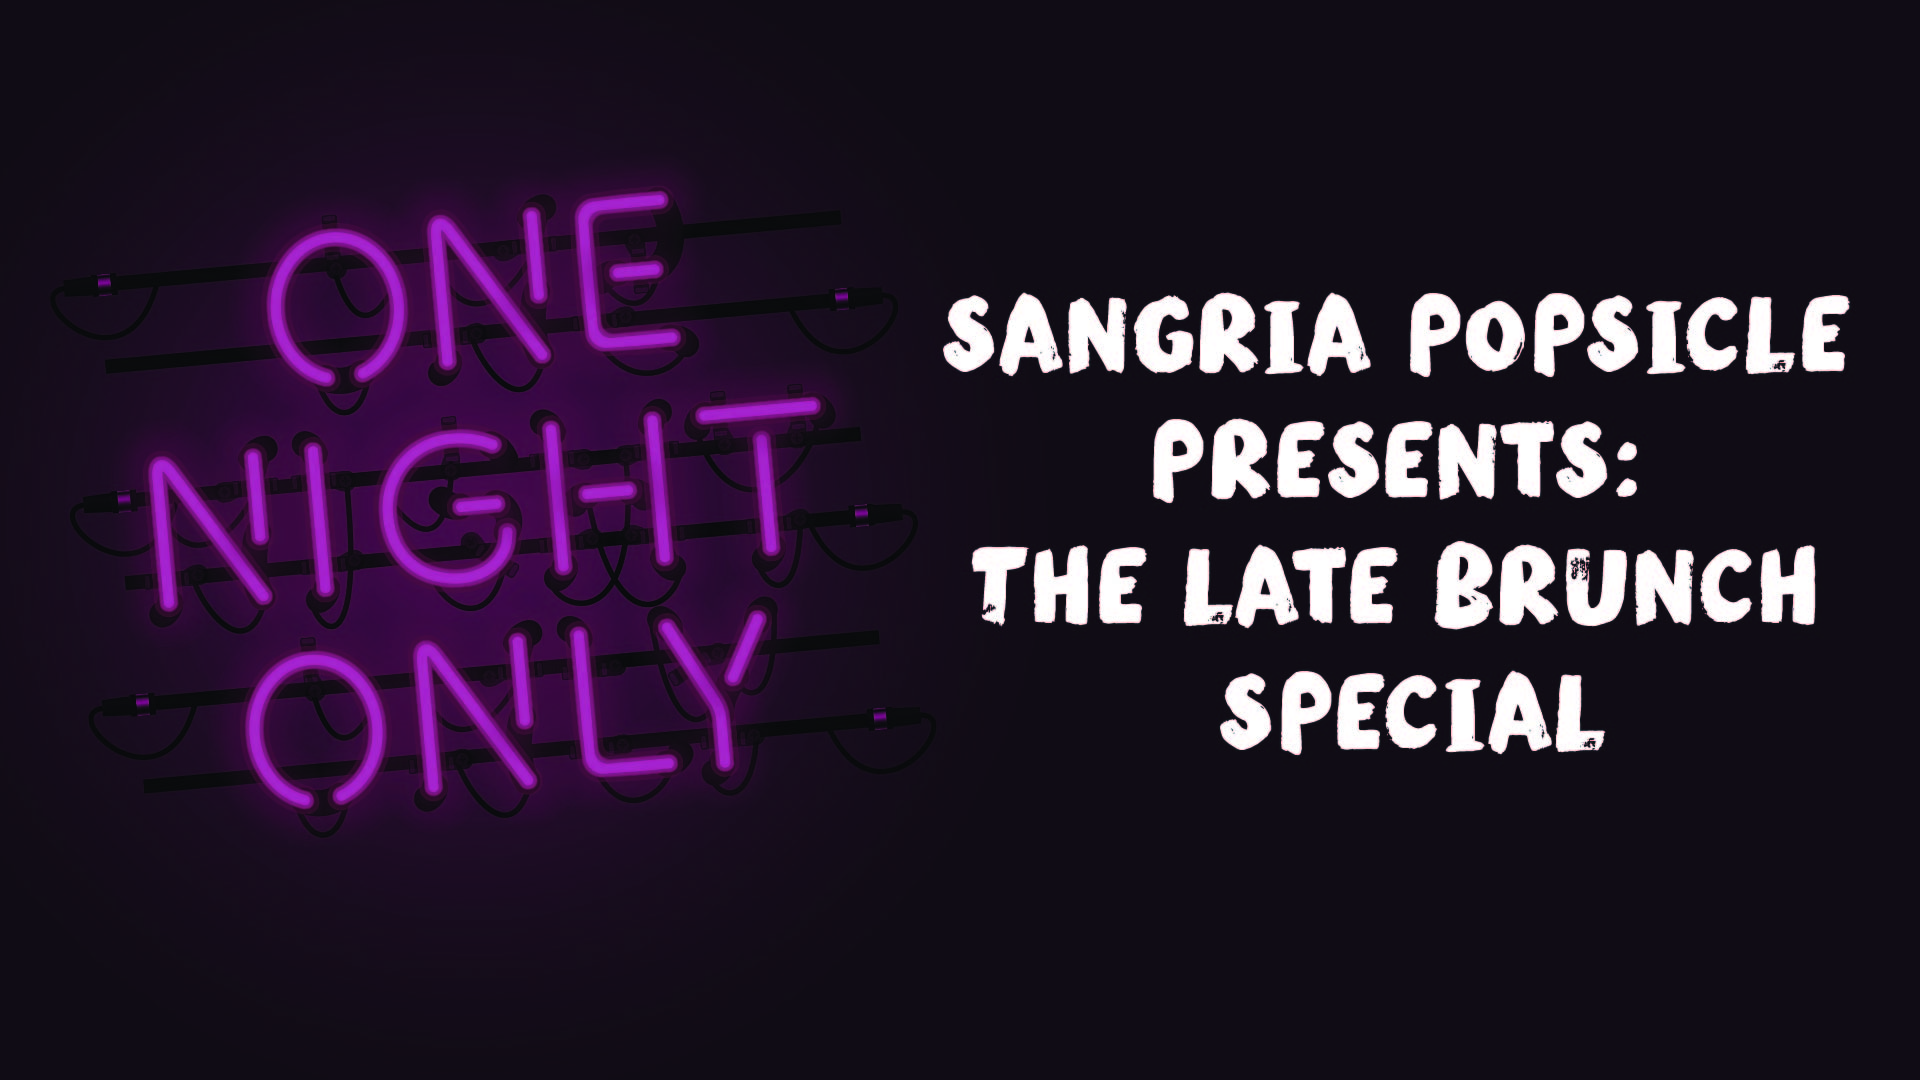 Sangria Popsicle Presents: The Late Brunch Special